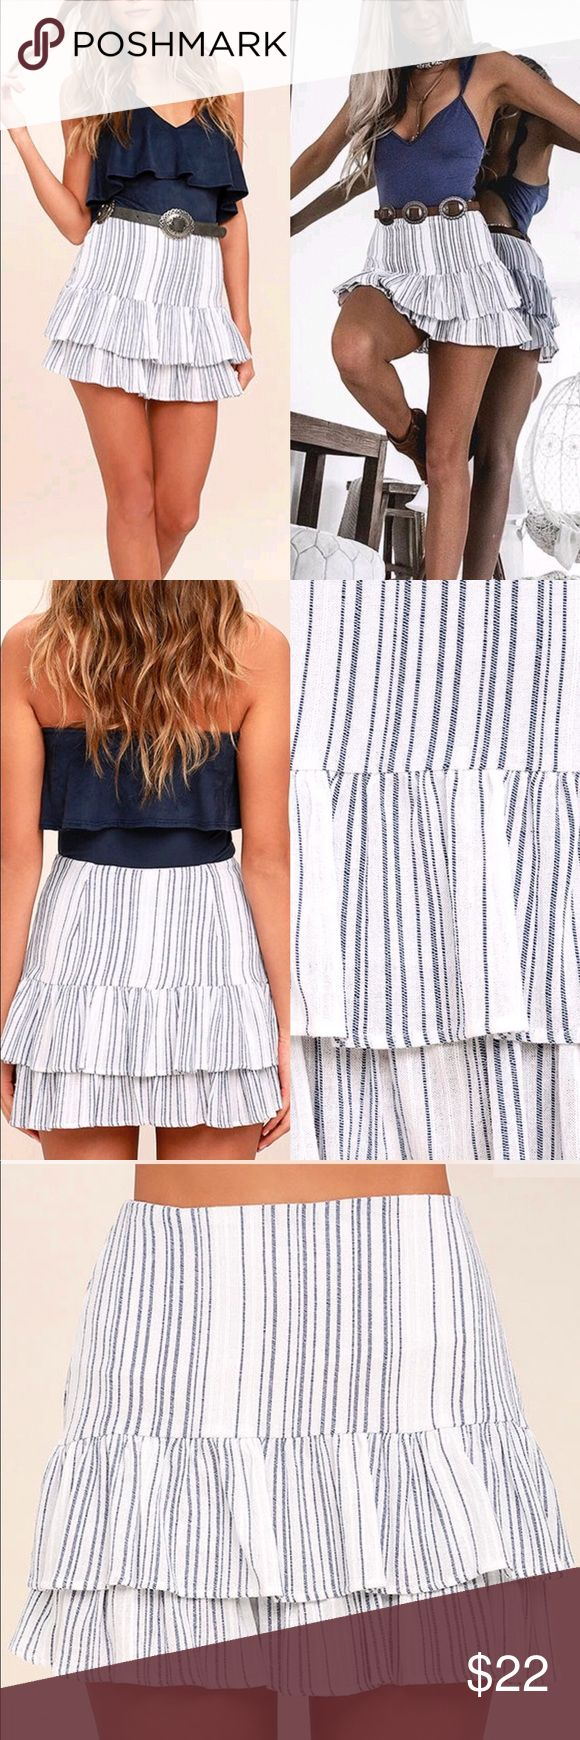 🆕 Hampton's Blue and White Skirt The Hamptons  Blue and White Striped Mini Skirt is the quintessential beach day ensemble! Gauzy woven blue and white striped fabric hugs you at the hips, then flares into a flirty, ruffled trumpet skirt. Hidden side zipper/clasp. Belt not included. As Seen On Kirsty of @kirstyfleming! Fully lined. Self: 100% Cotton. Lining: 100% Polyester. Hand Wash Cold. Made with Love in the U.S.A. Skirts